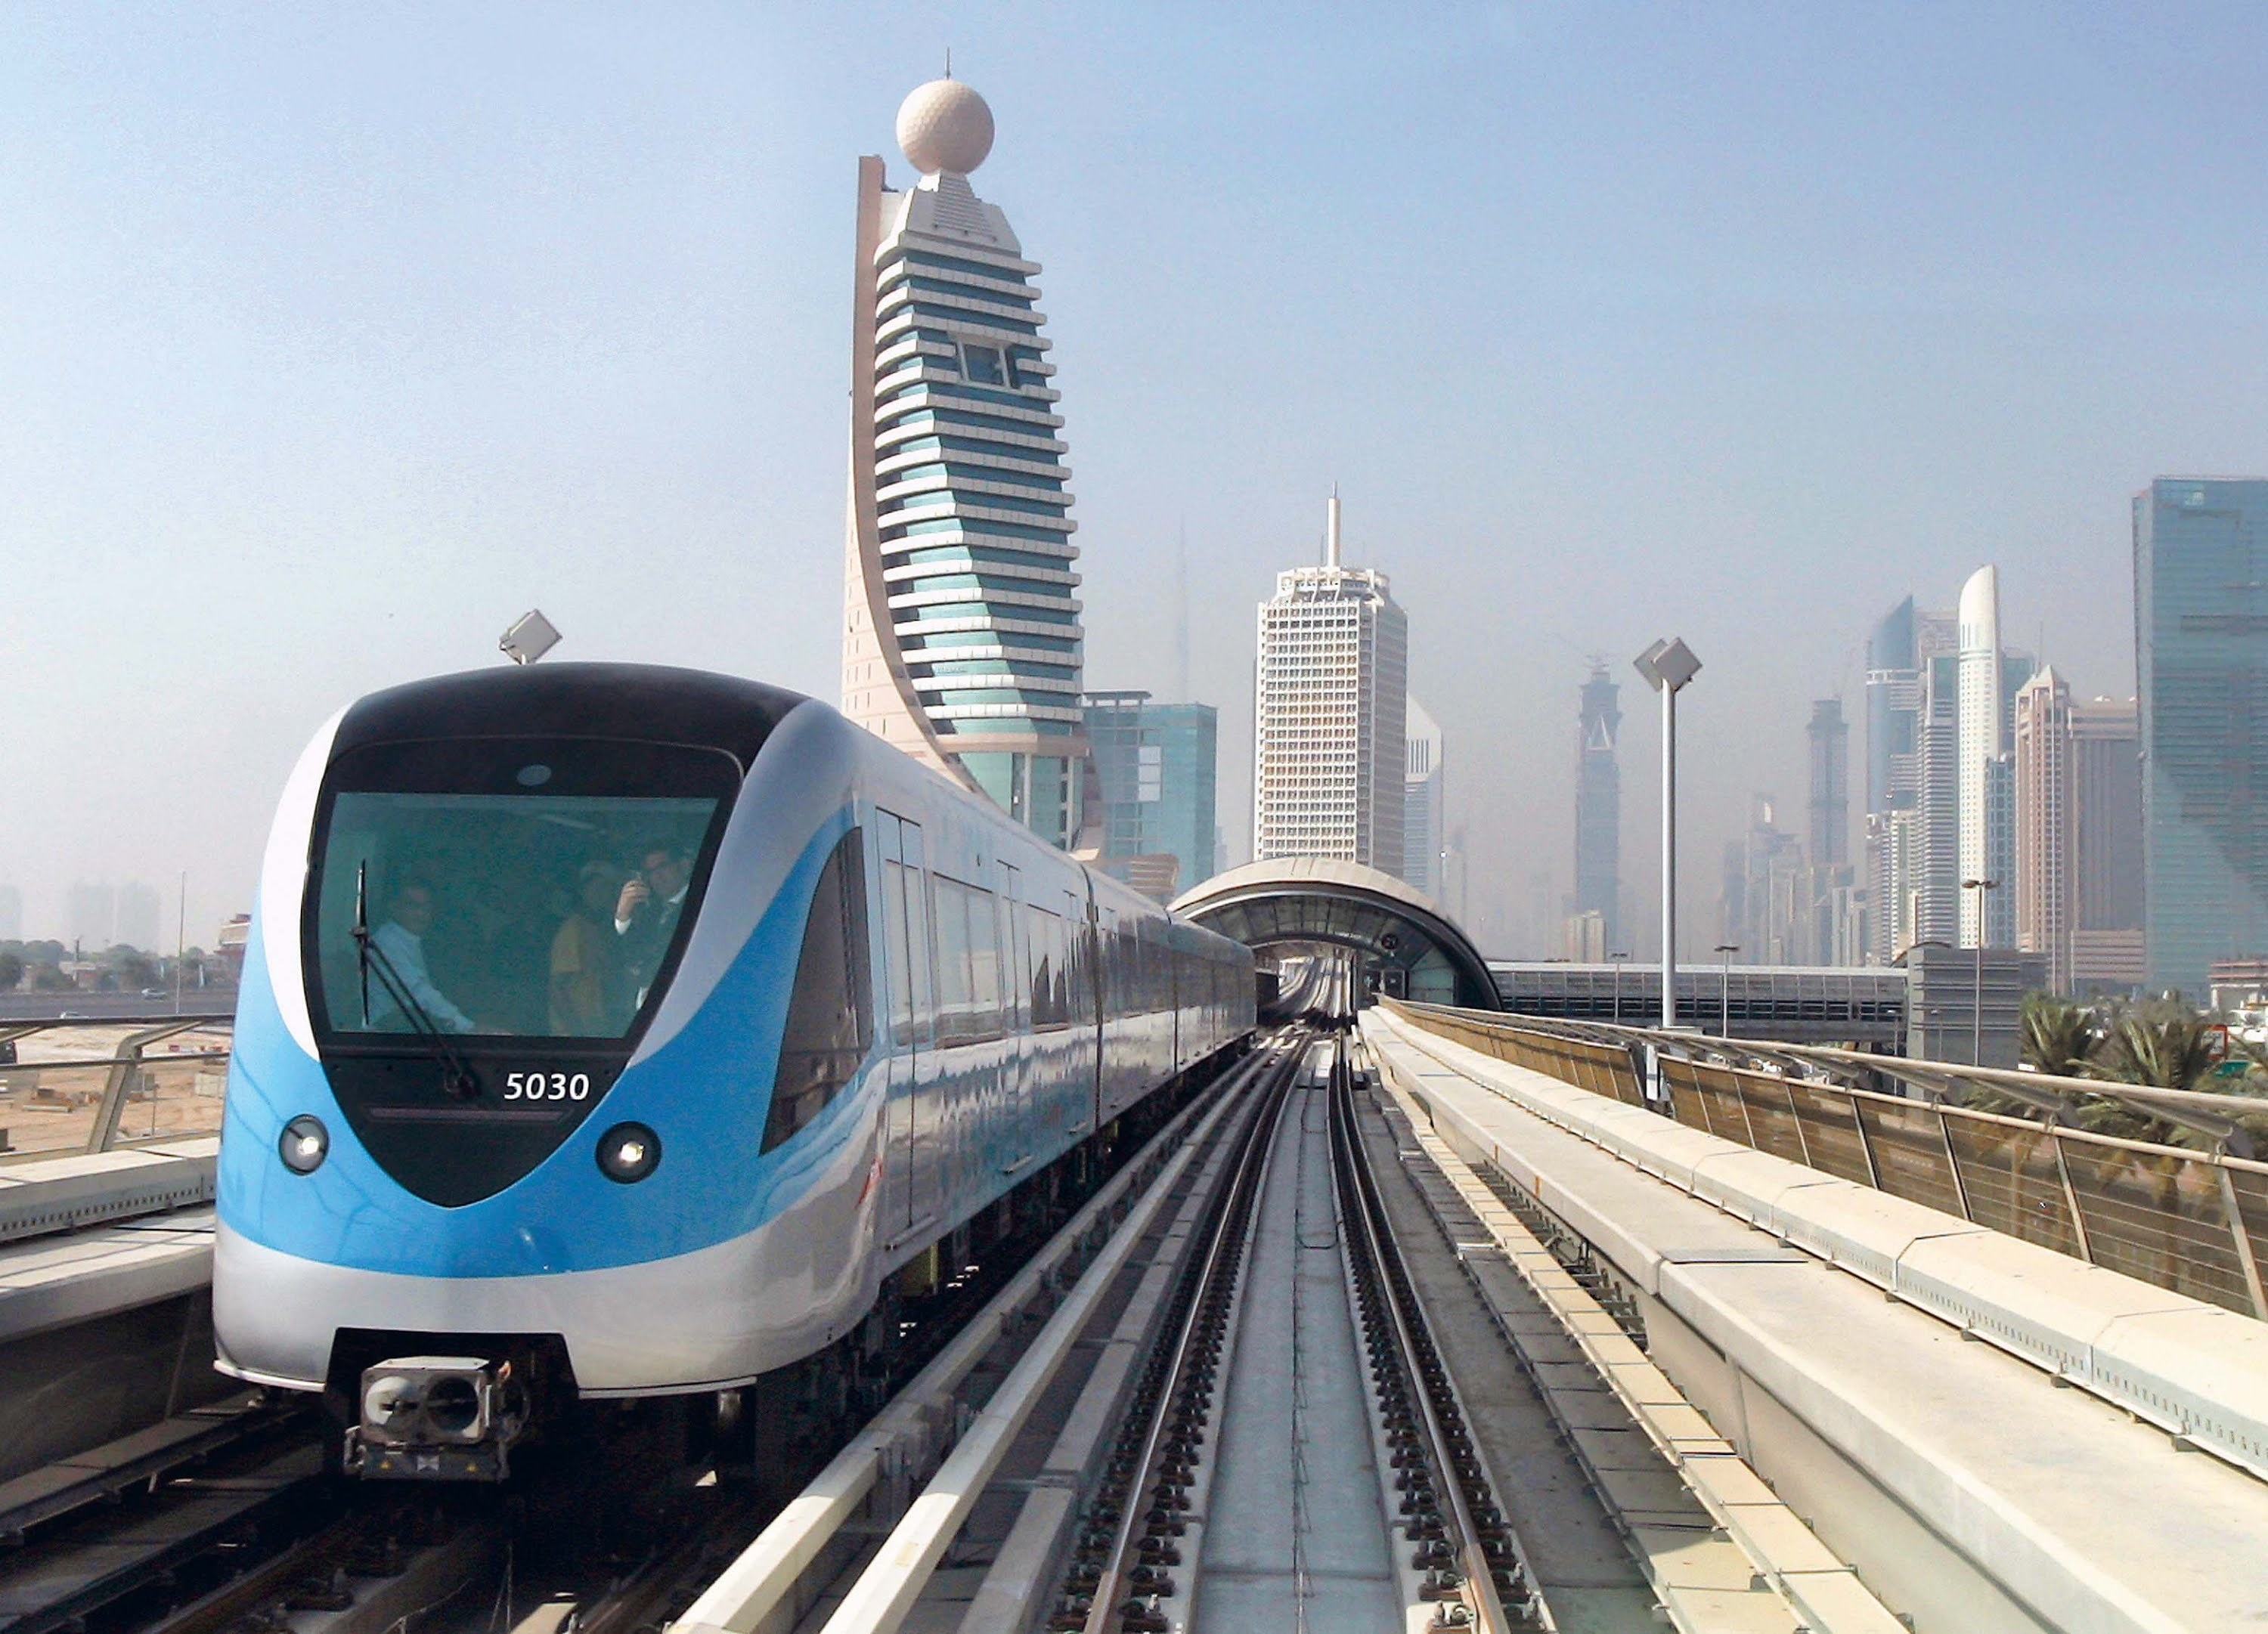 Multidisciplinary team carry out research on economic impact of Dubai Metro